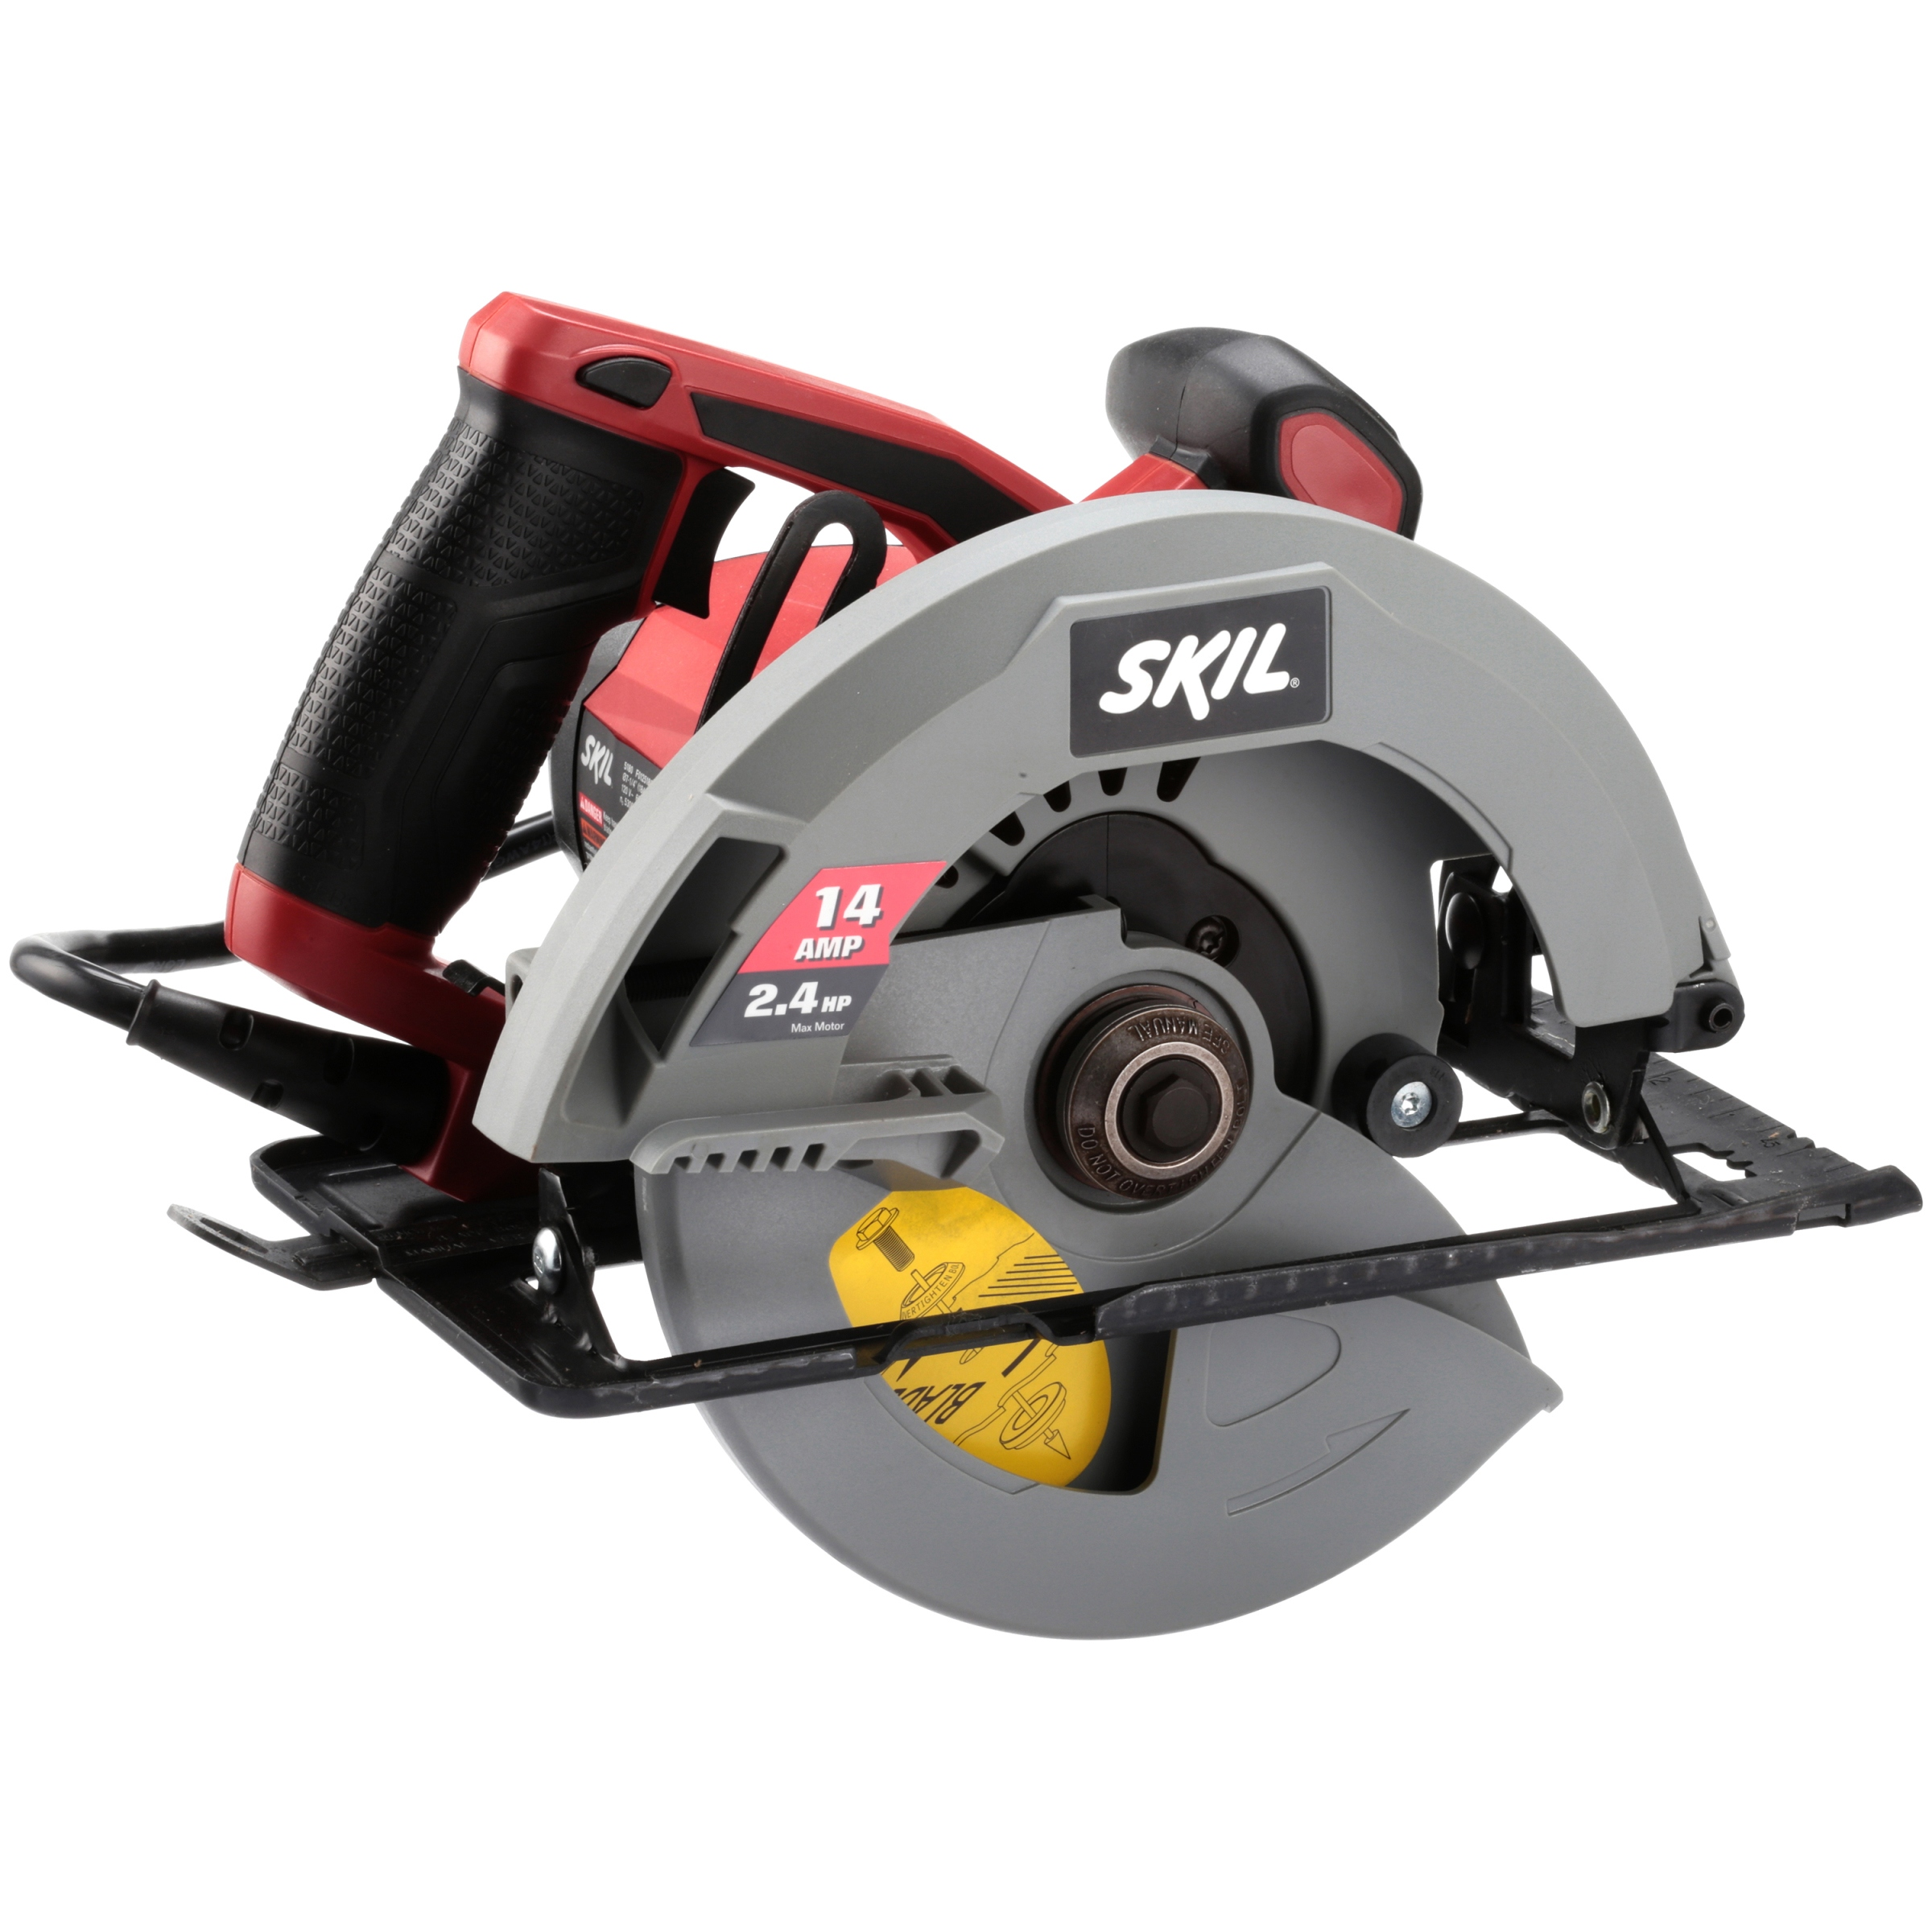 Skil 5180 01 7 14 14 amp circular saw walmart keyboard keysfo Images